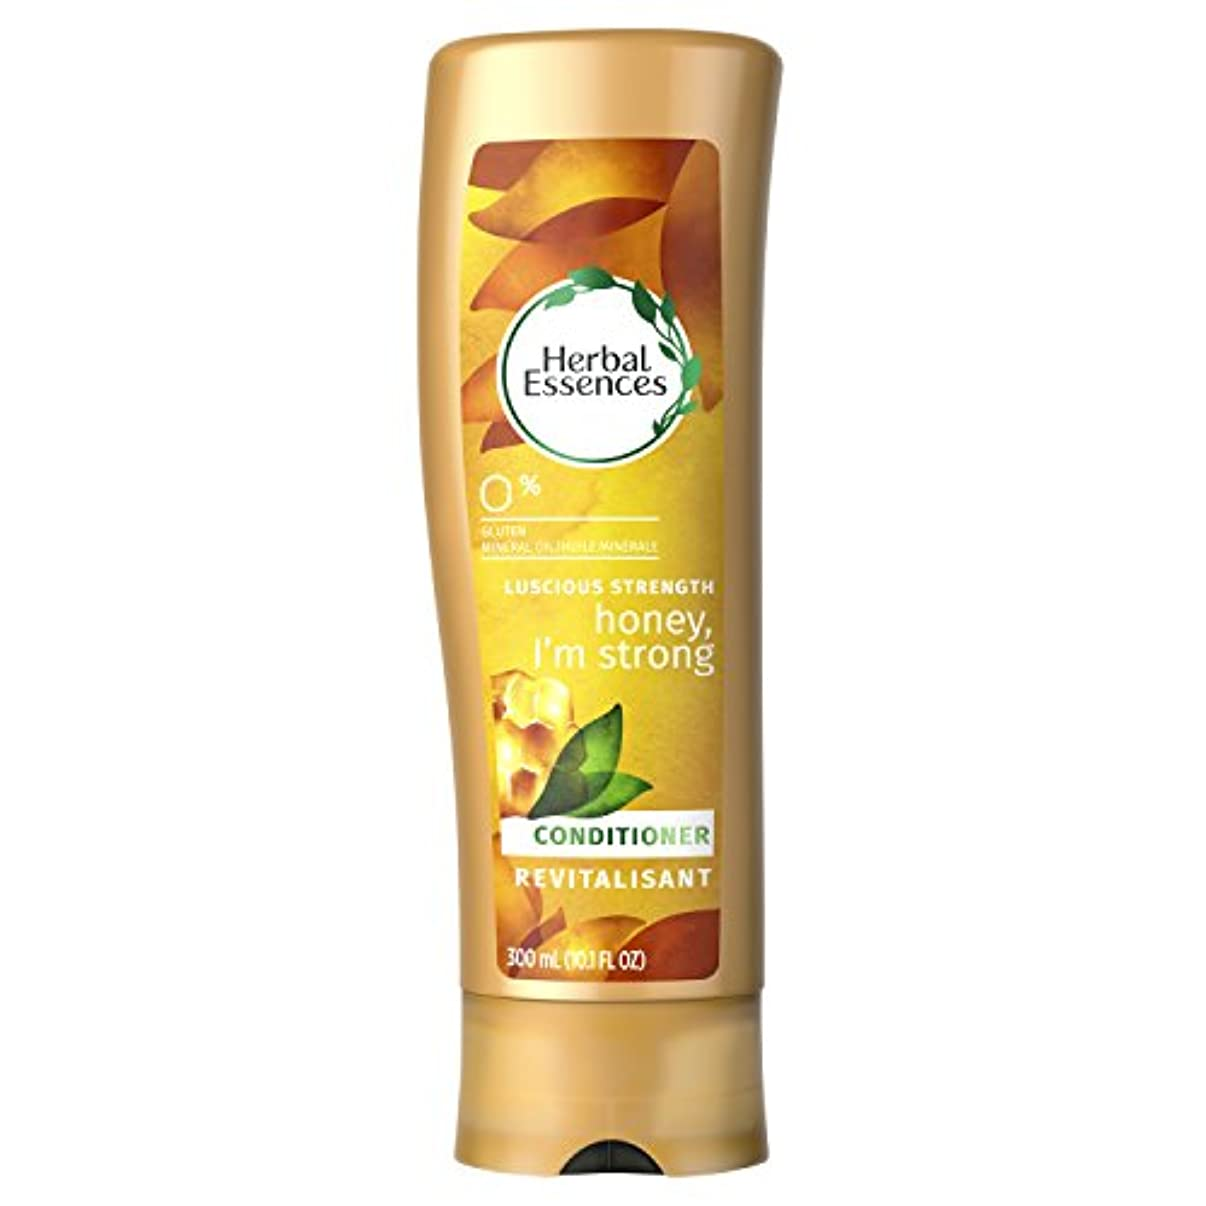 Herbal Essences Honey I'm Strong Strengthening Conditioner, 10.1 Fluid Ounce by Procter & Gamble - HABA Hub [並行輸入品]